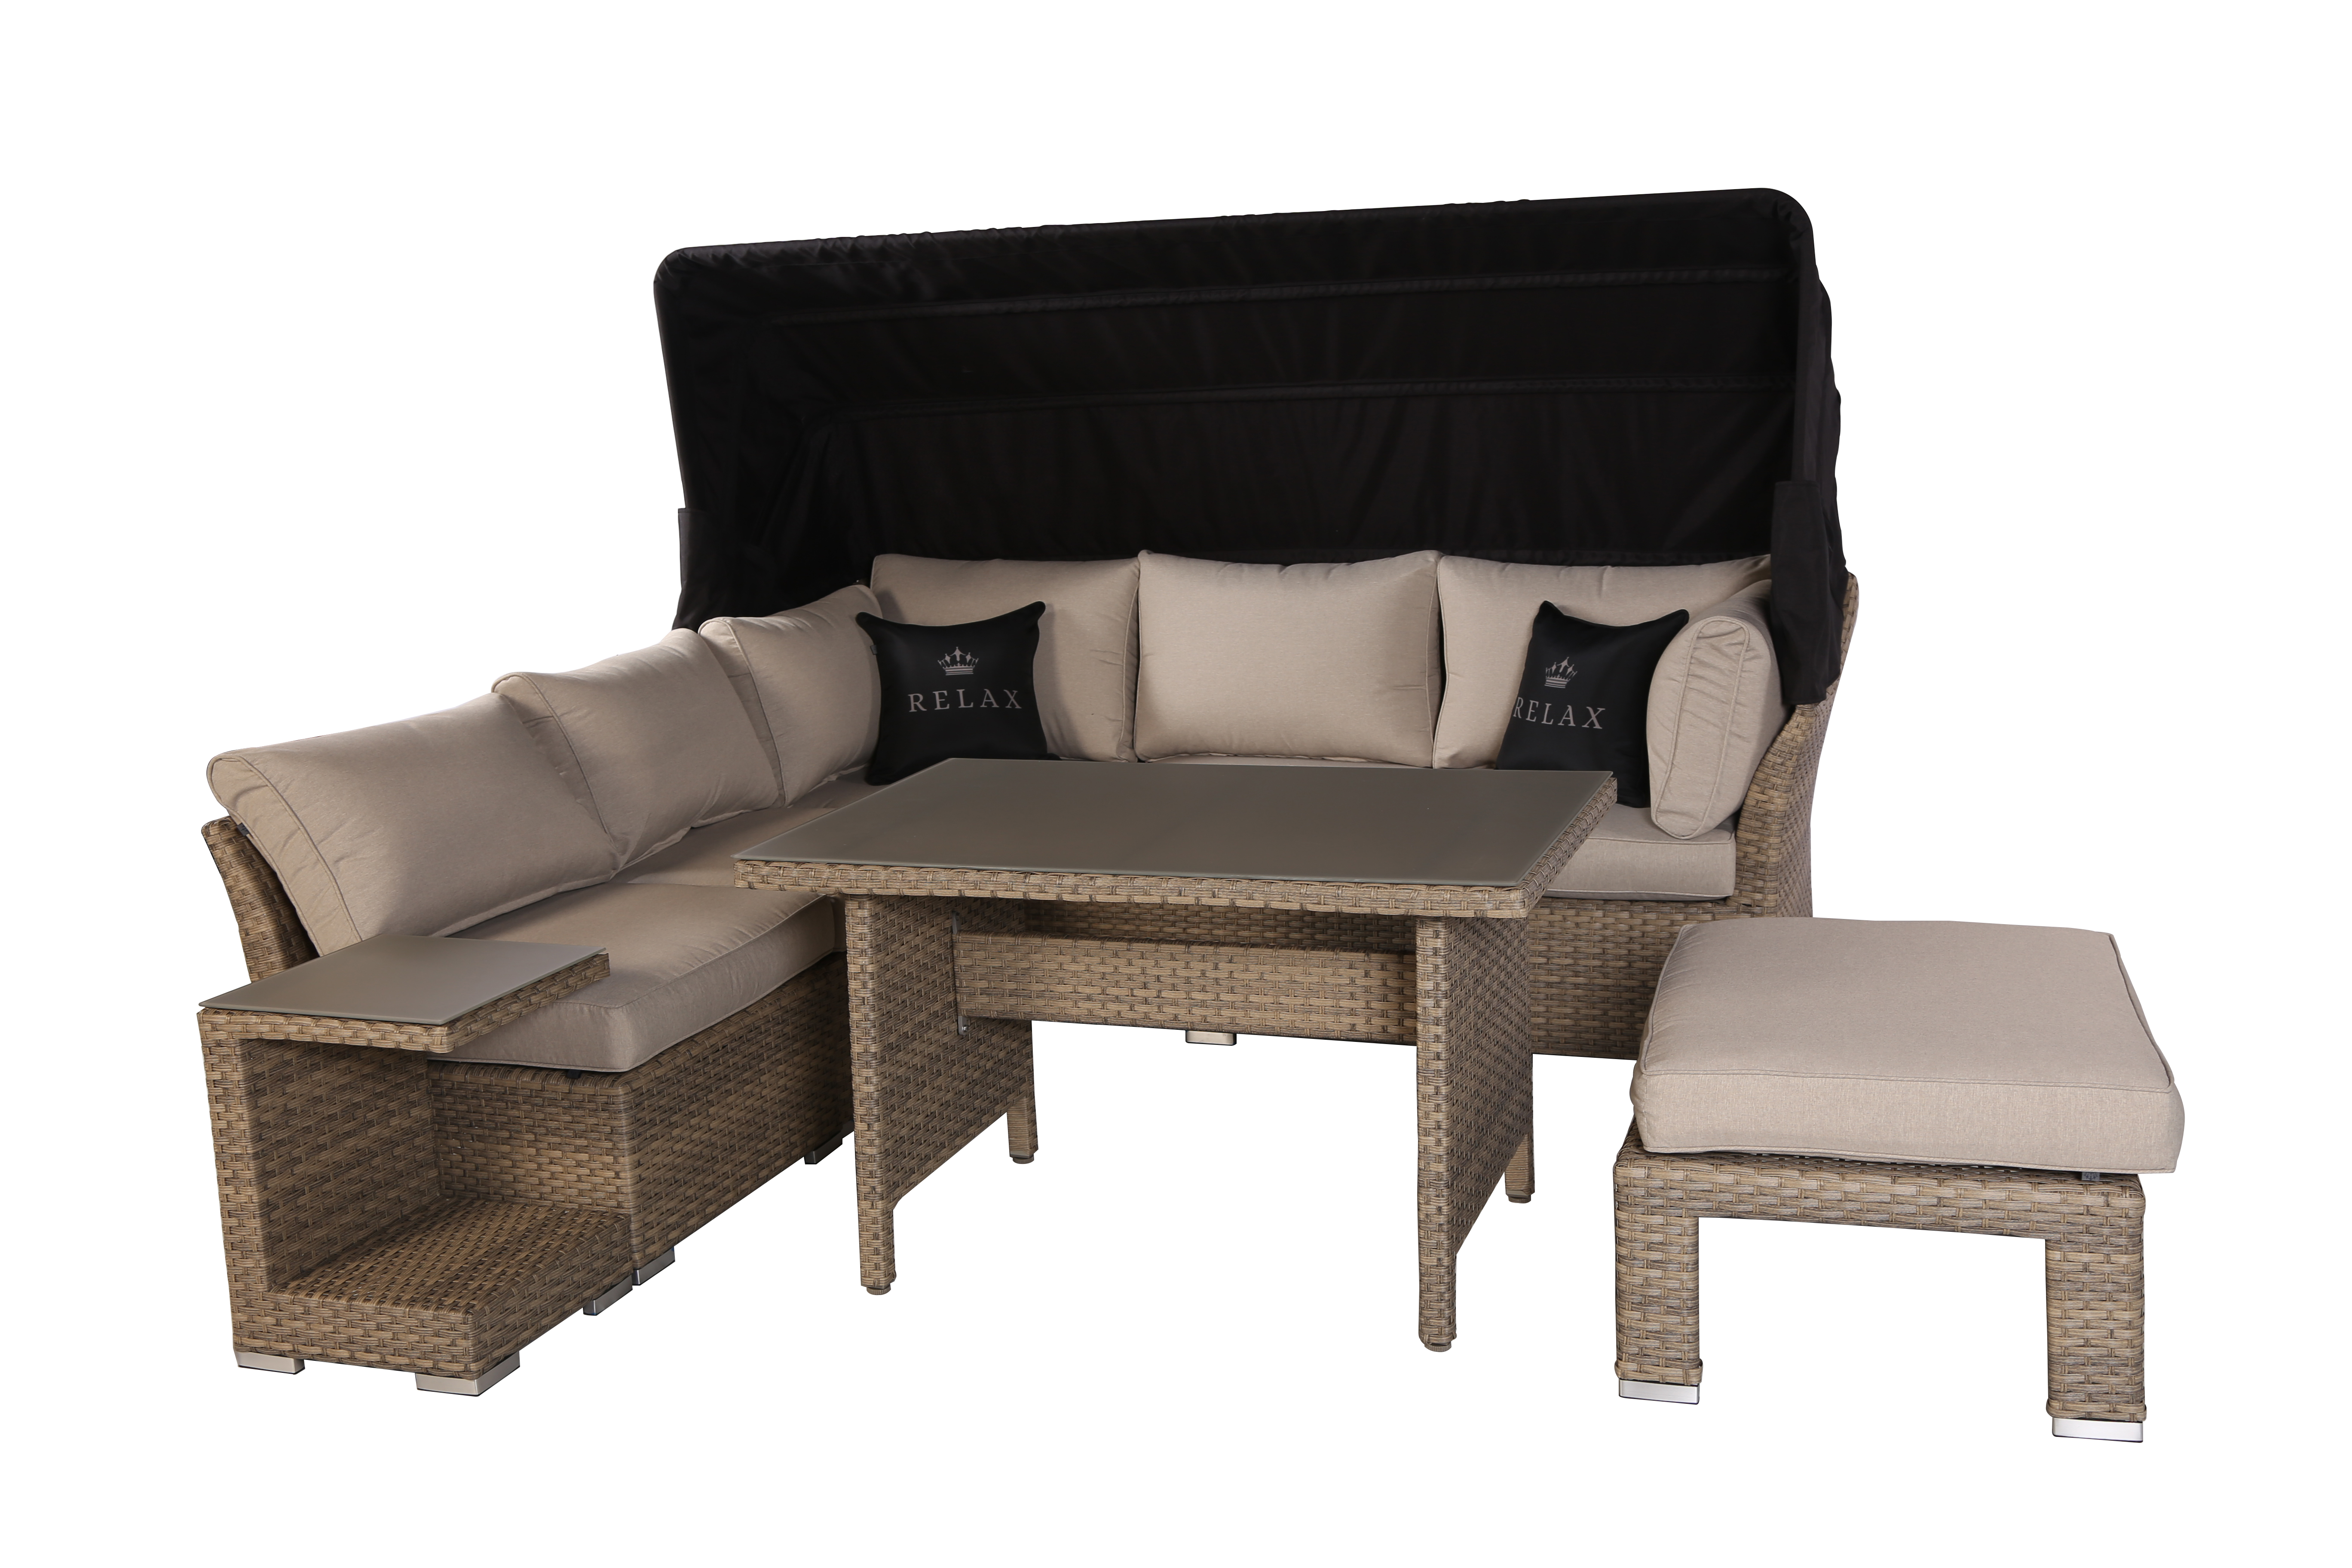 relax ecklounge polyrattan garten lounge set mit dach sand lounge m bel garten. Black Bedroom Furniture Sets. Home Design Ideas